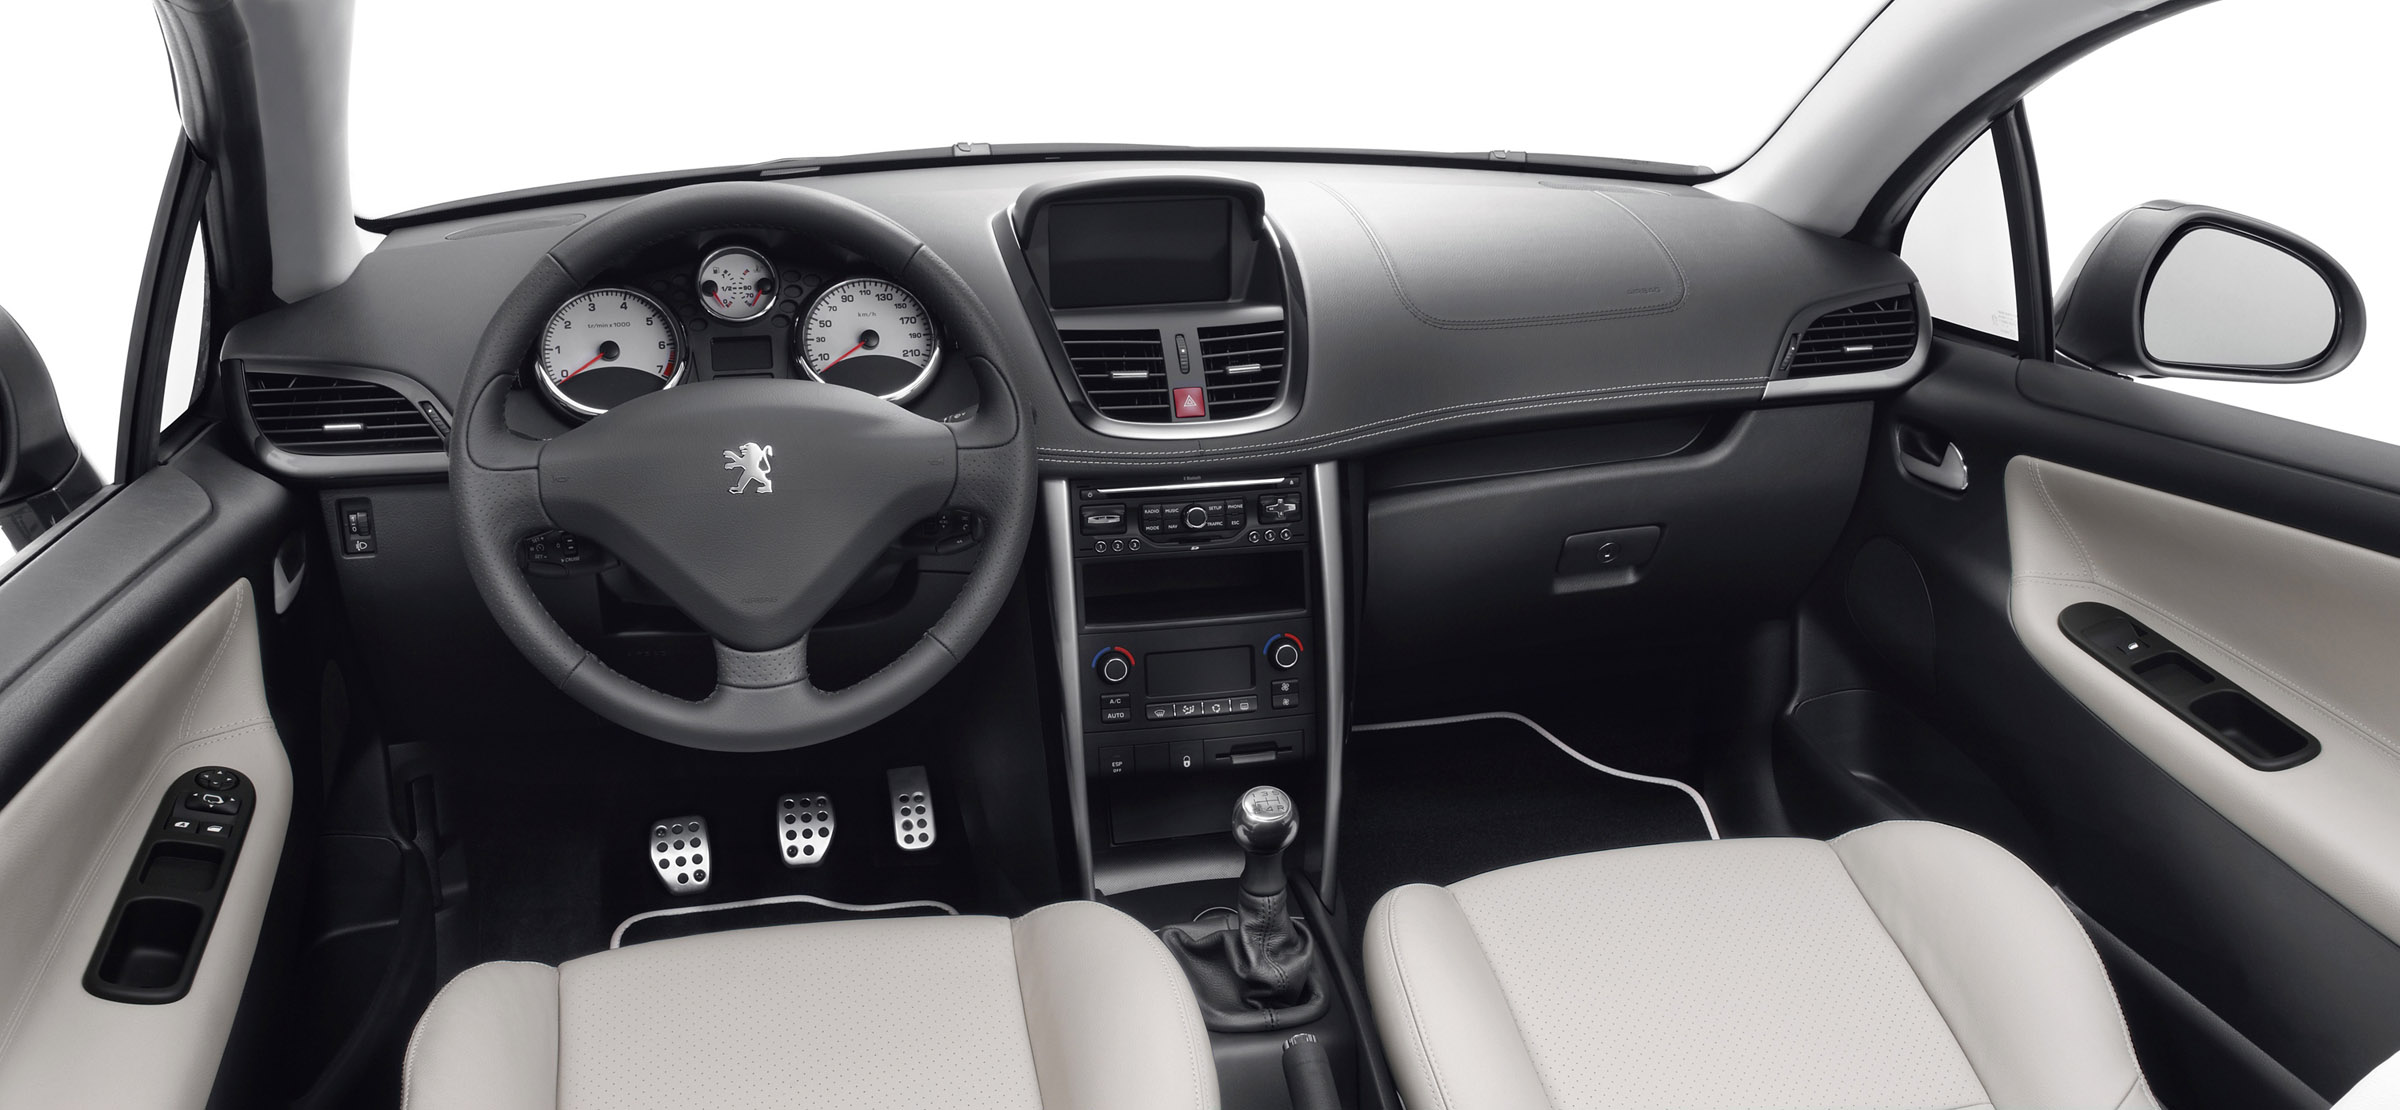 The restyled peugeot 207 cc in detail for Peugeot 207 interior